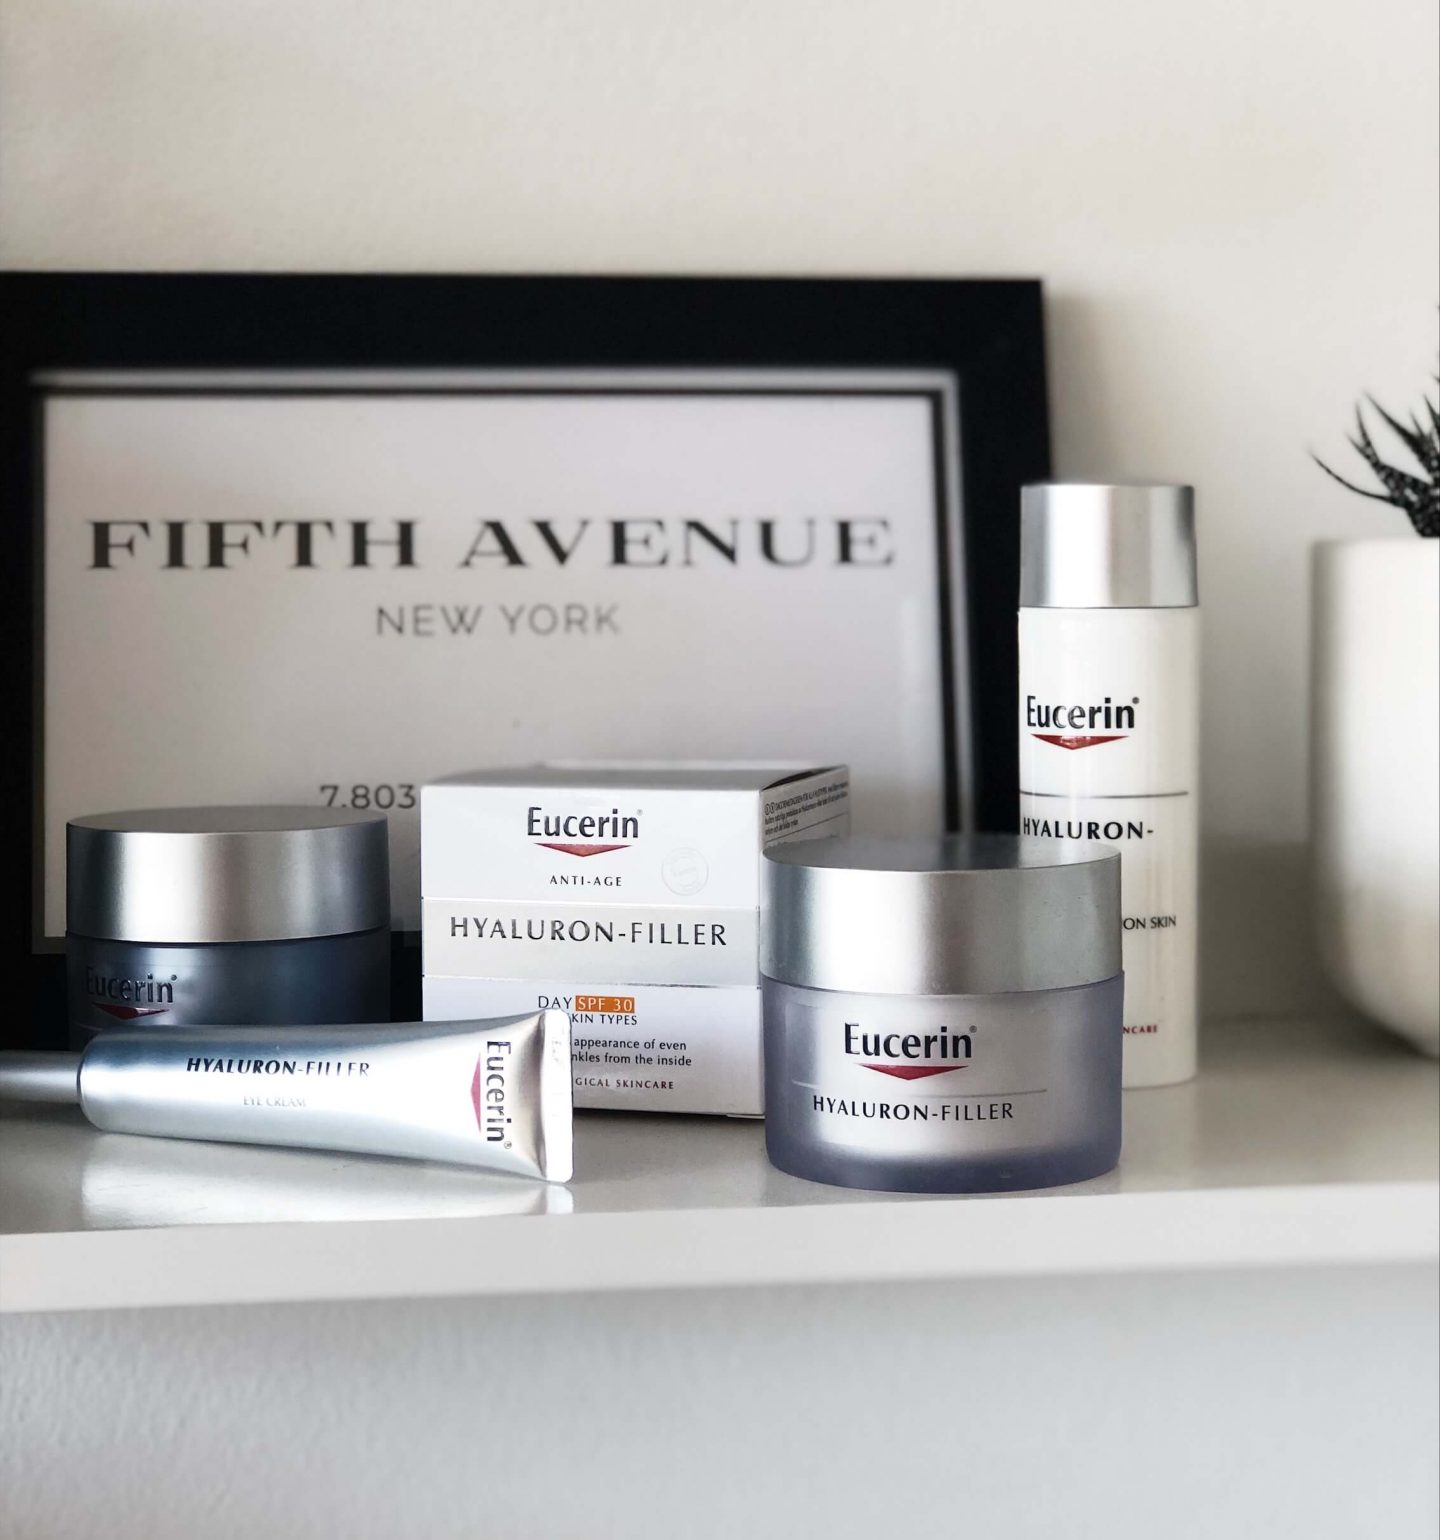 Eucerin Hyaluron-Filler anti aging range topknotch cape town